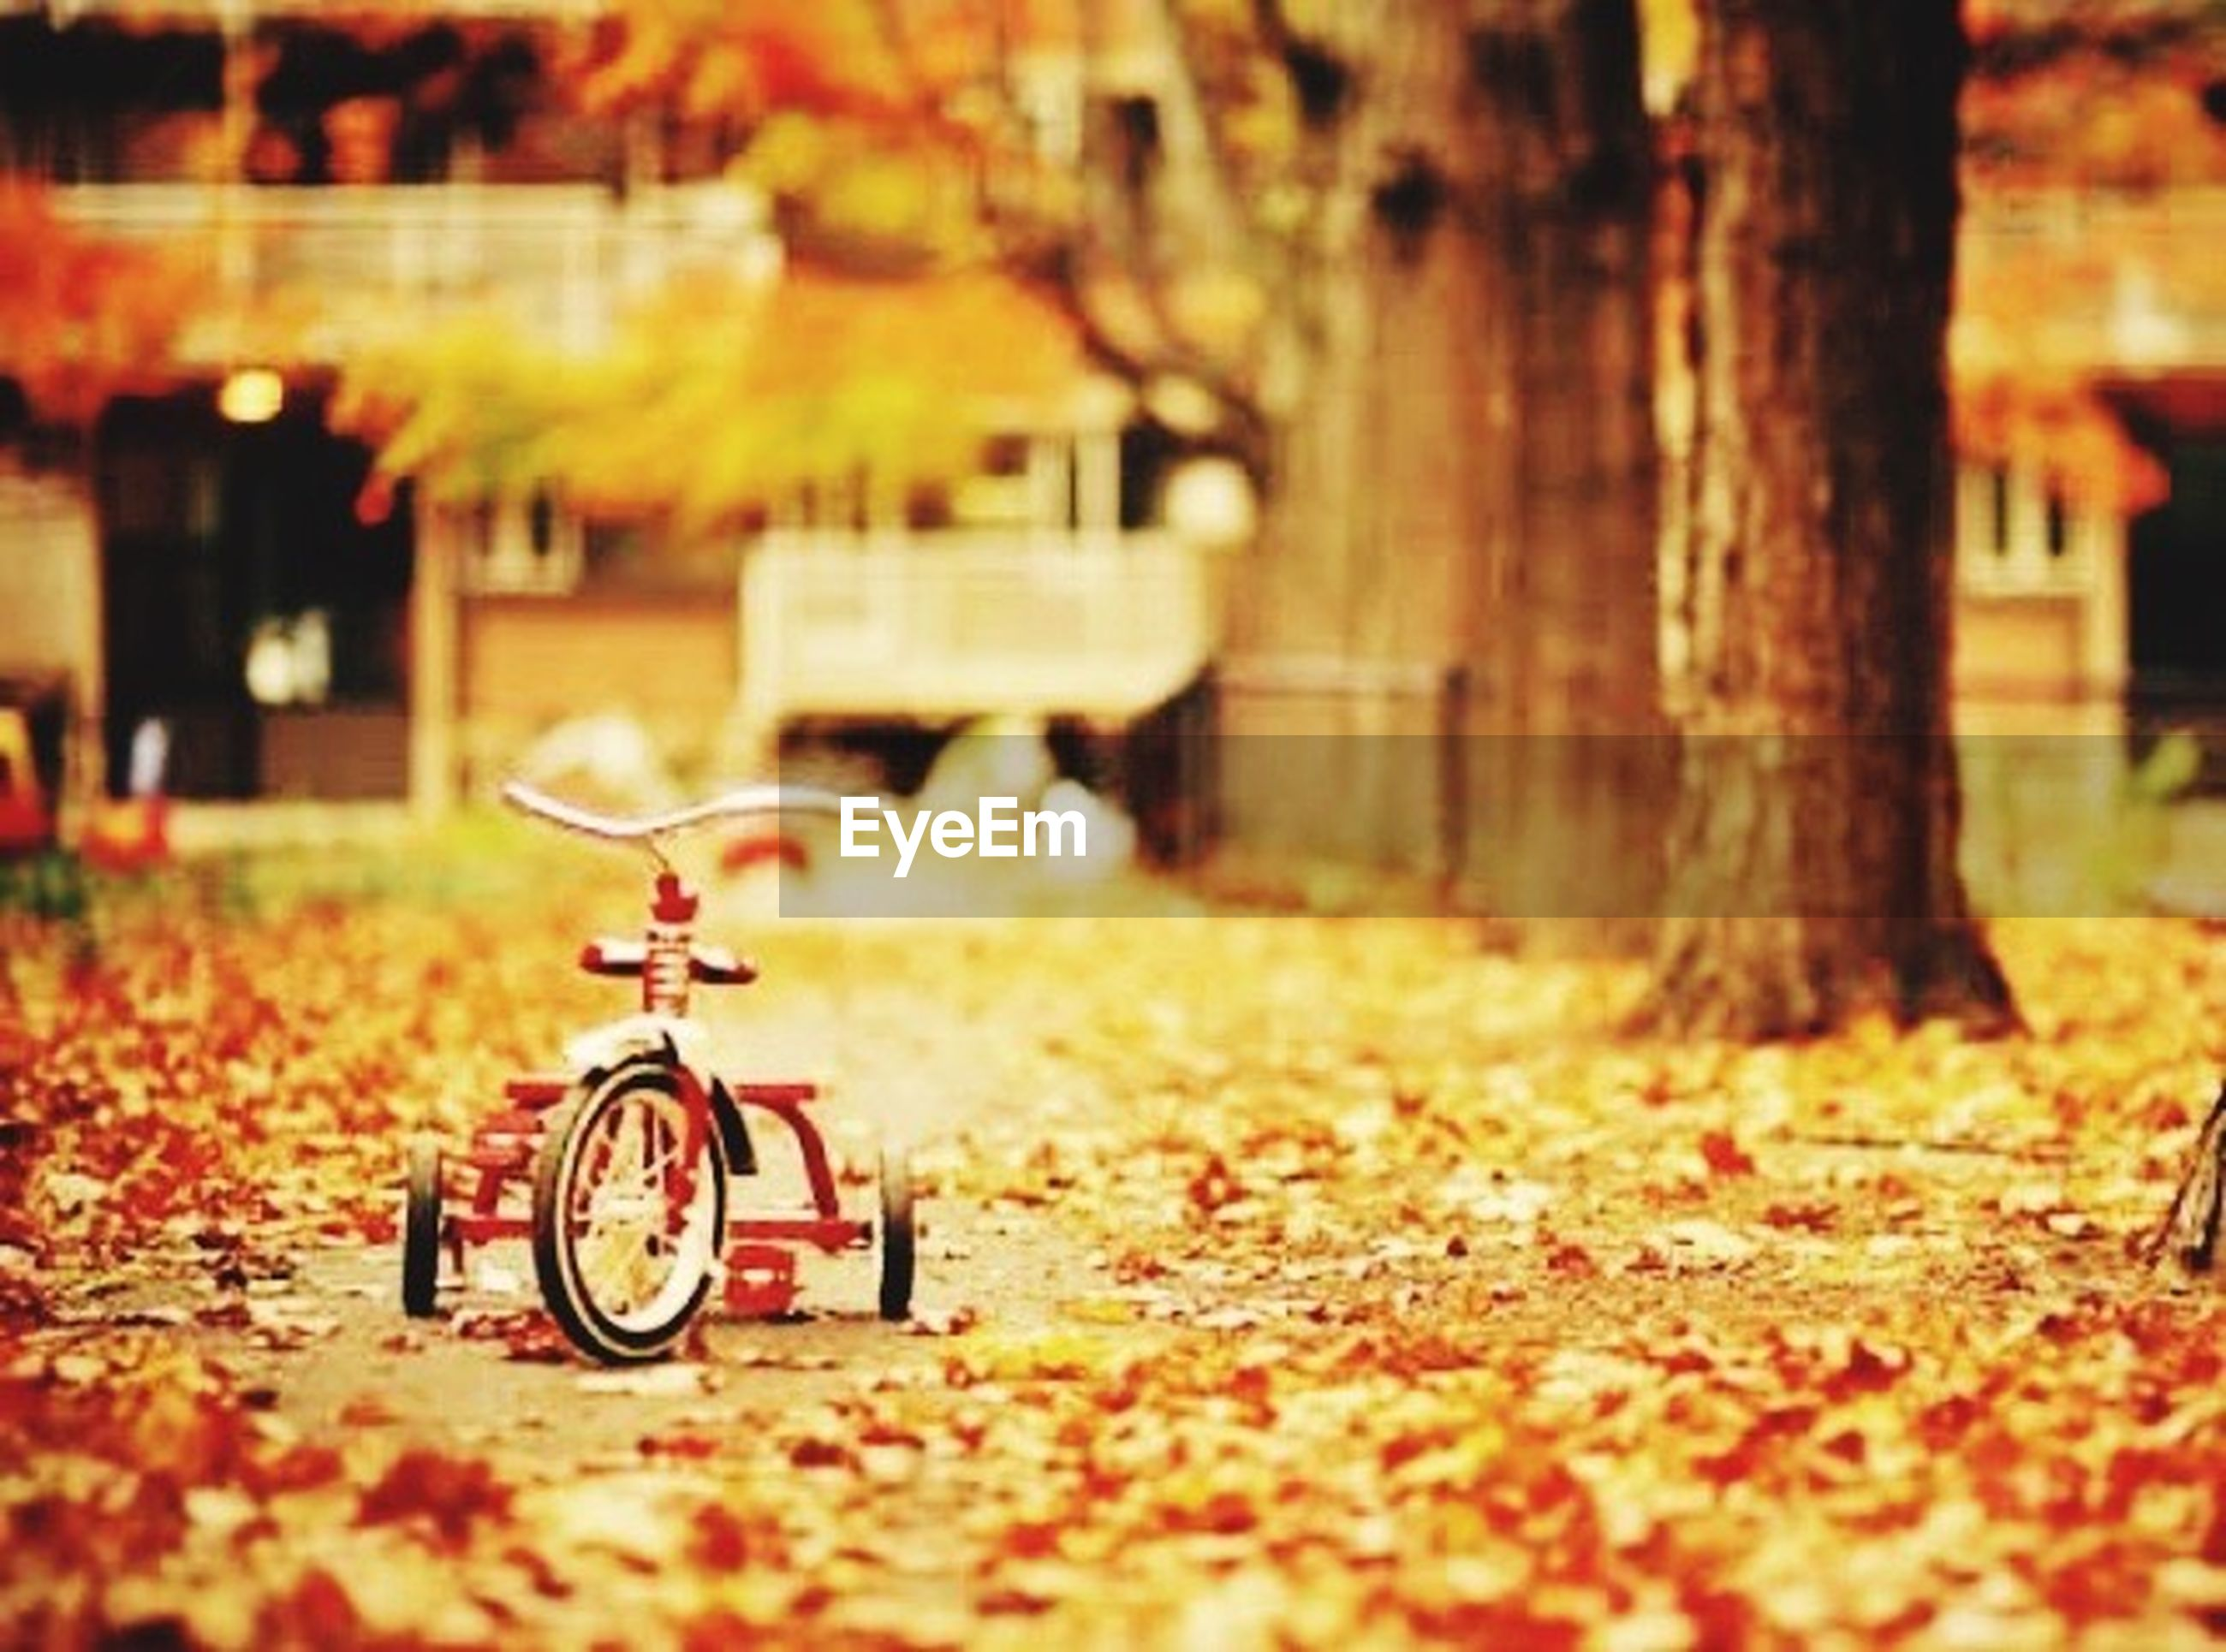 bicycle, transportation, mode of transport, land vehicle, autumn, selective focus, yellow, tree, focus on foreground, outdoors, street, day, stationary, surface level, change, season, nature, no people, field, built structure